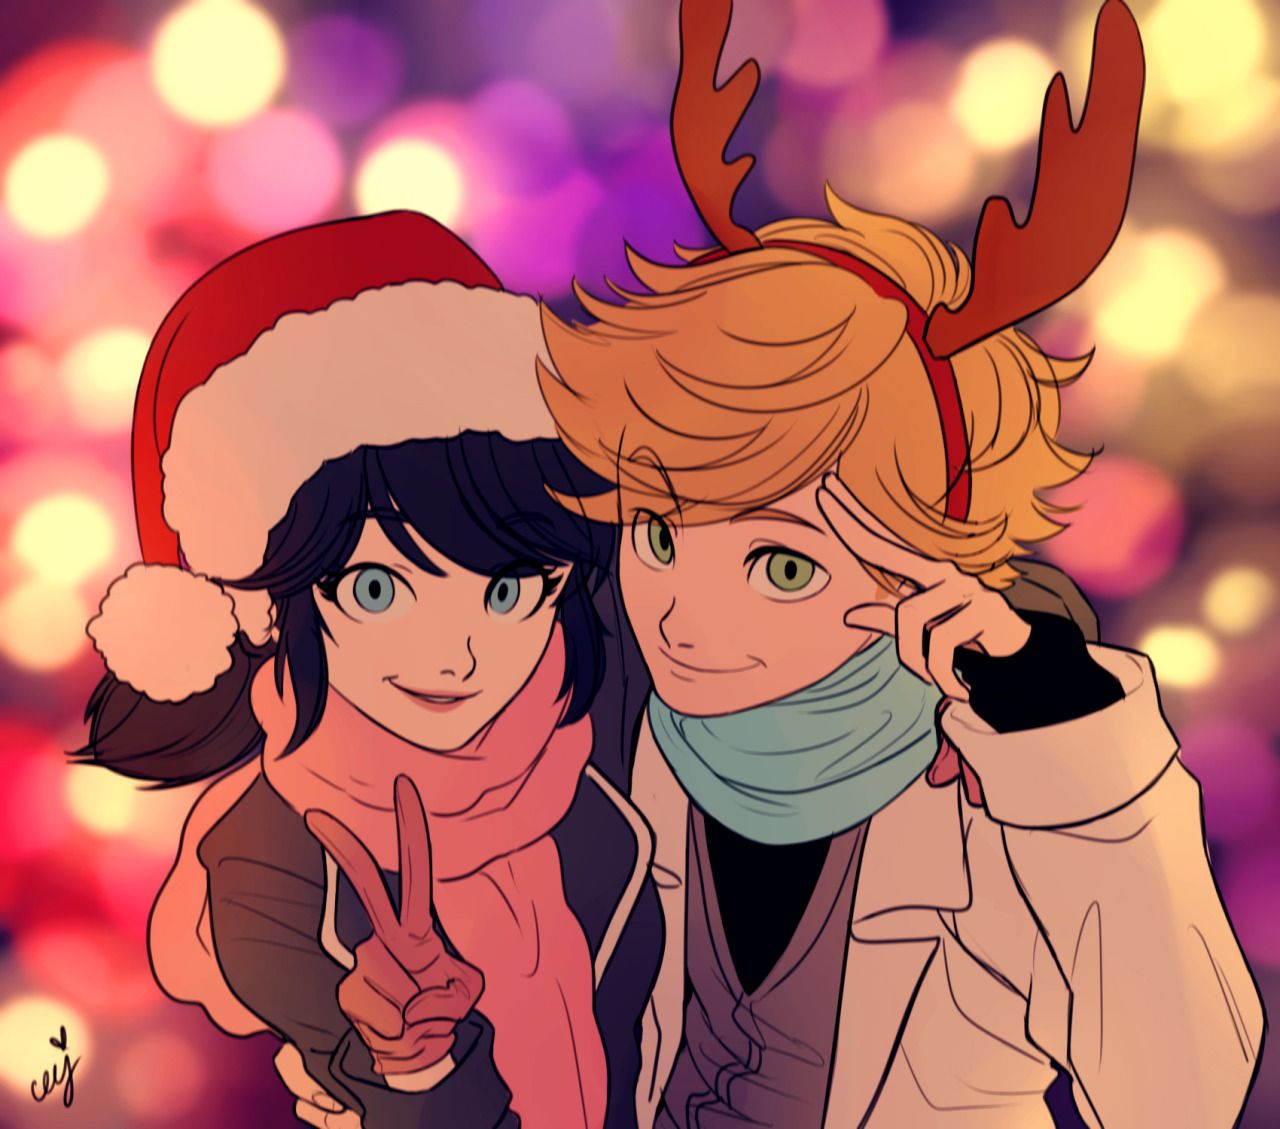 TODAY'S THE DAY WE WATCH THE SPECIAL | Christmas Art | Pinterest ...